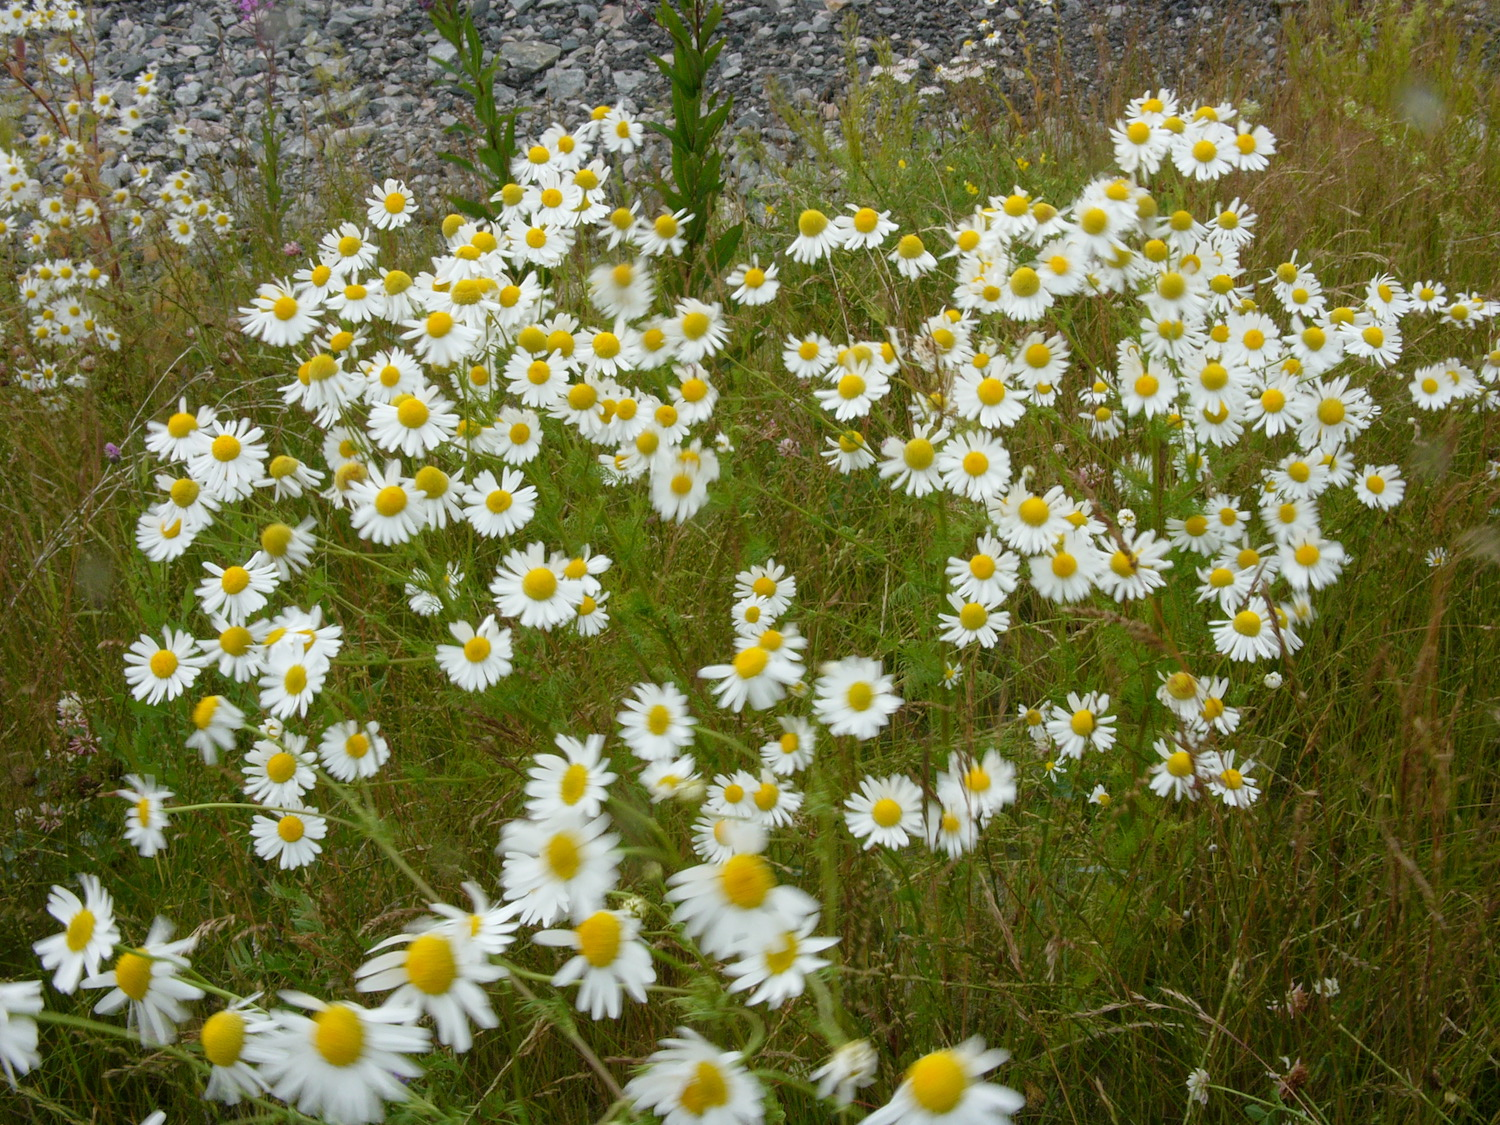 Camomile grows beside the streets